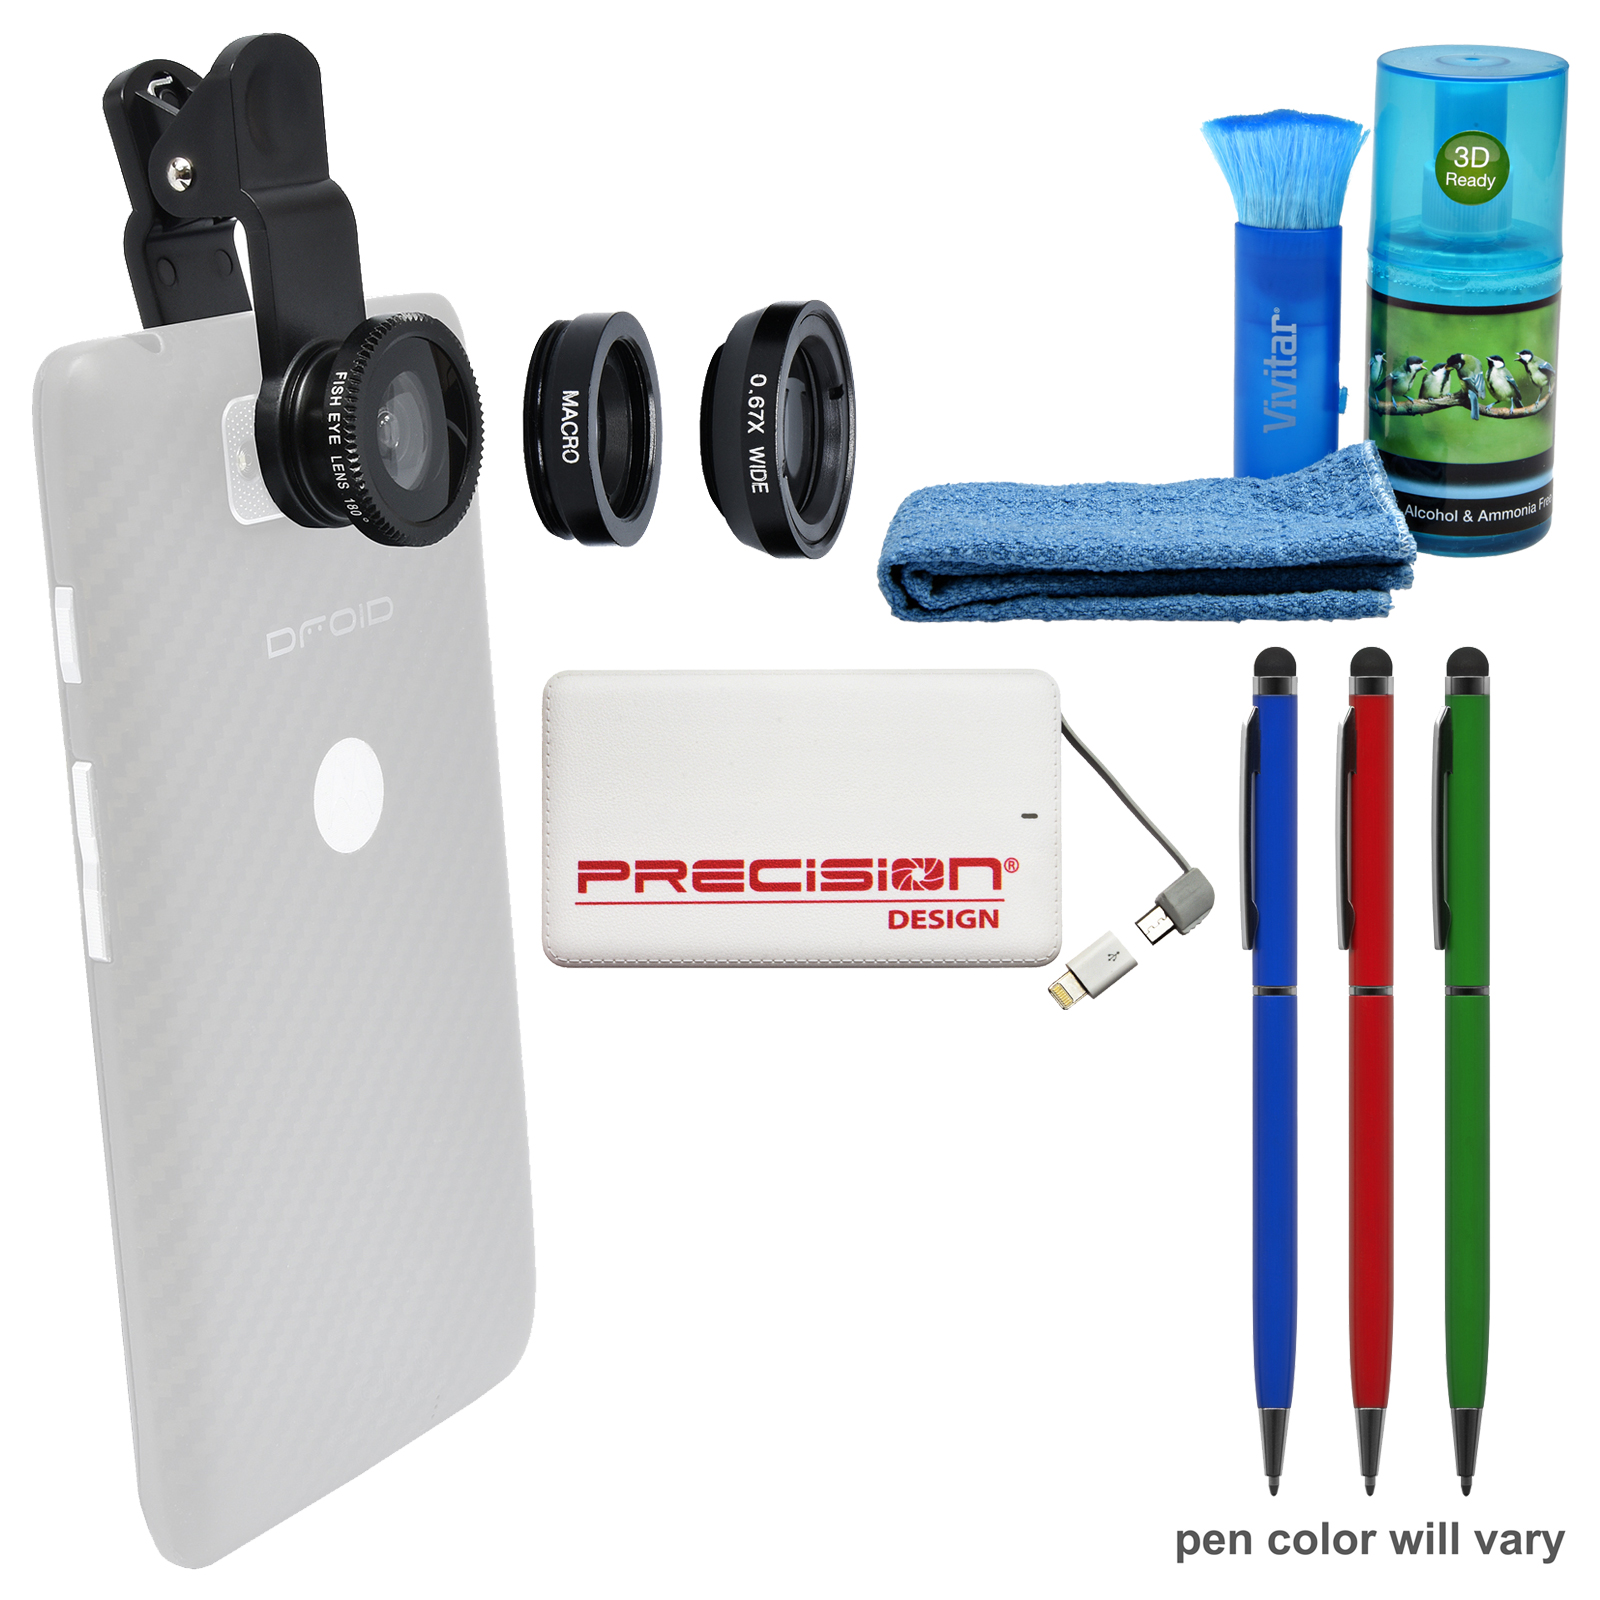 Zuma 3-in-1 Clip-on Fisheye, Macro & .67x Wide-Angle Lens Set for Smartphones & Tablets with 5000mAh Power Bank + (3) Stylus Pens + Cleaning Kit